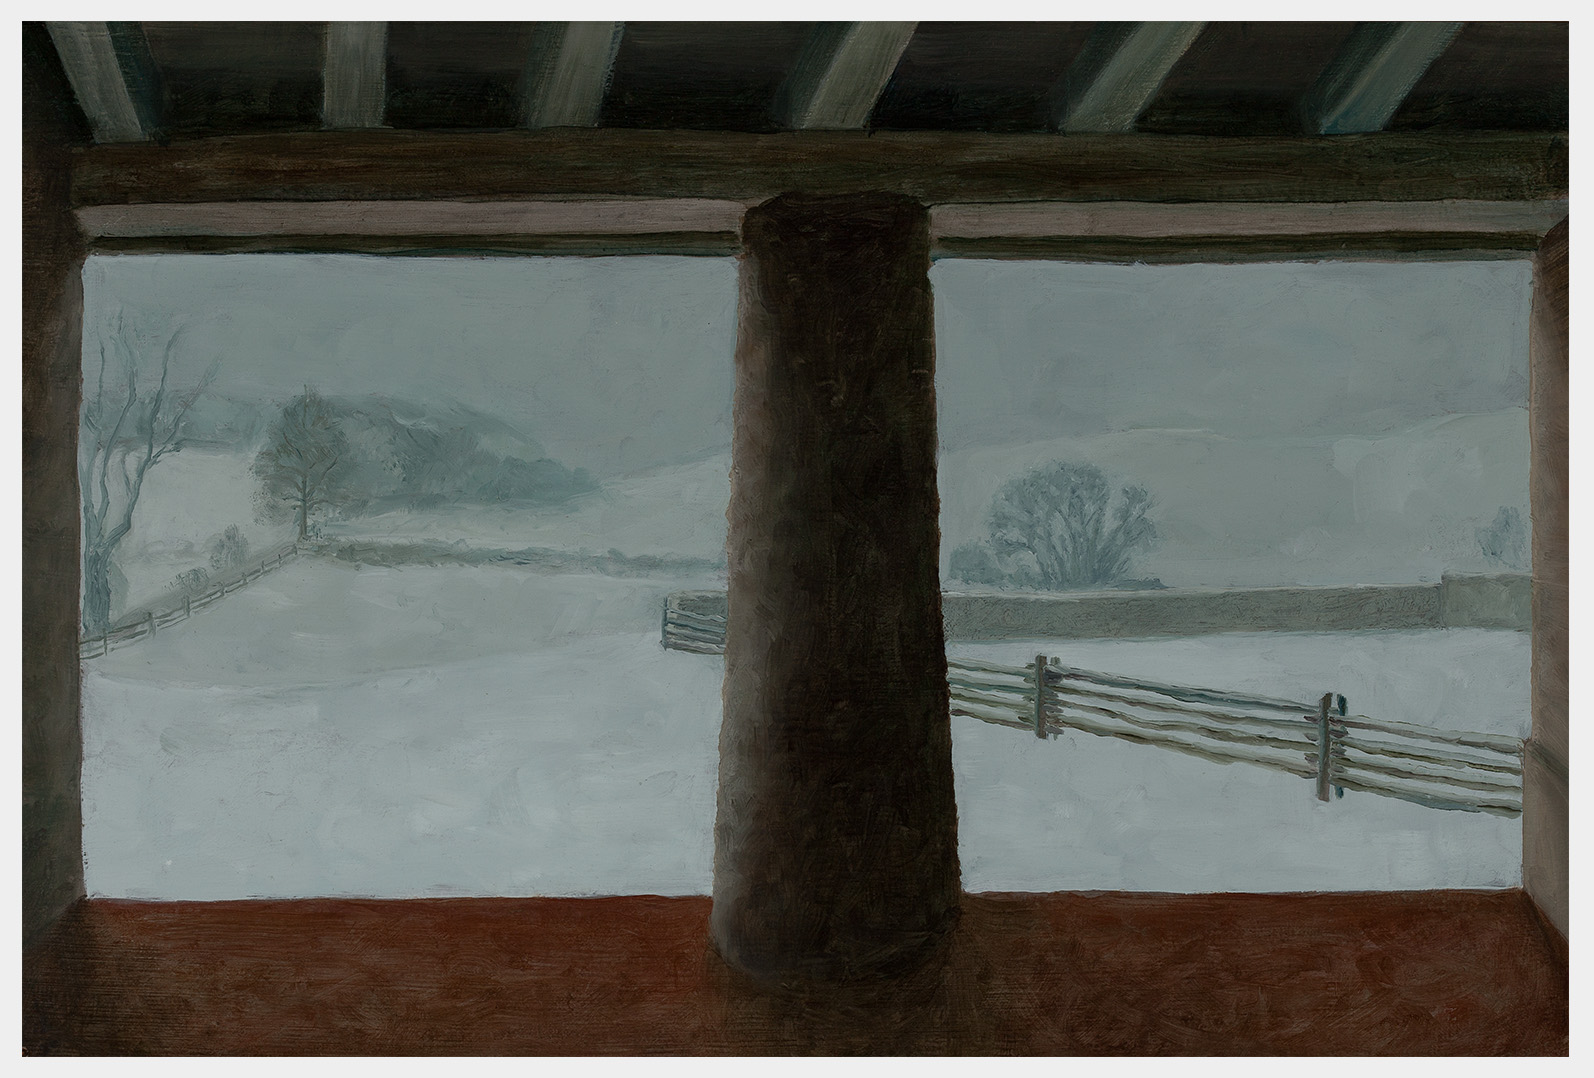 Realistic landscape oil painting from a barn looking out onto a courtyard and fields and trees beyond during a snowstorm